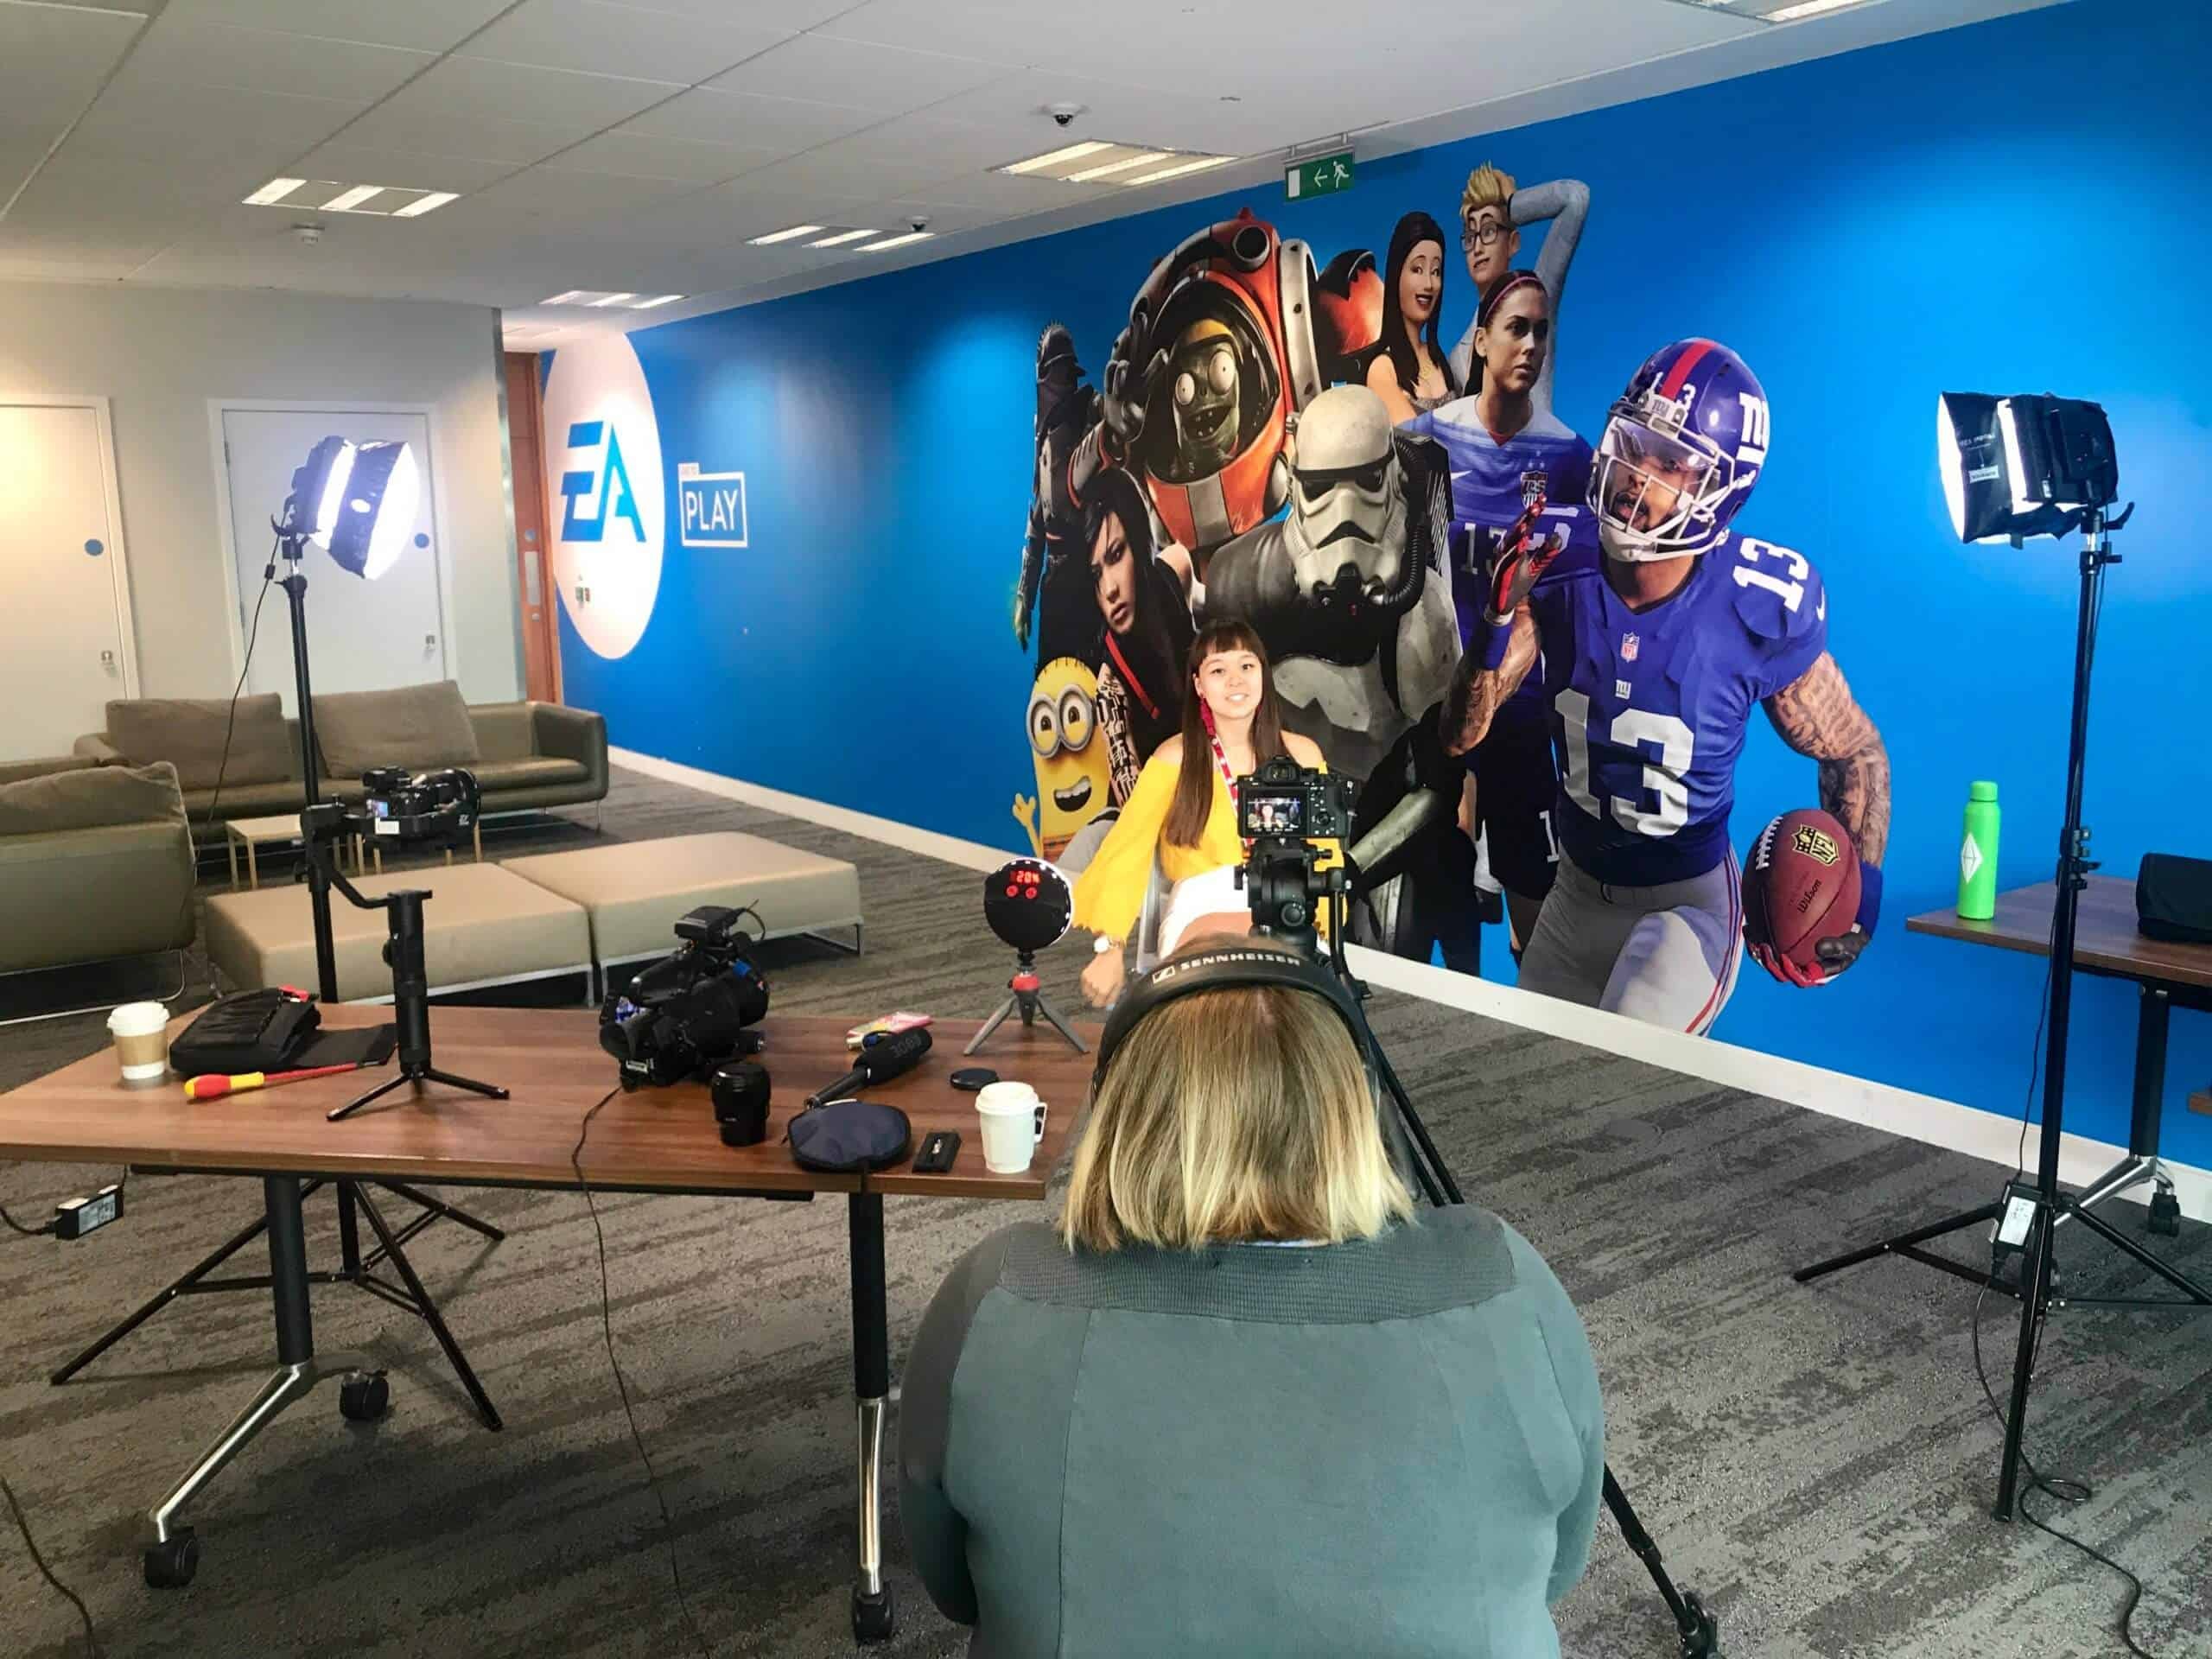 EA Games Interview behind the scenes photo